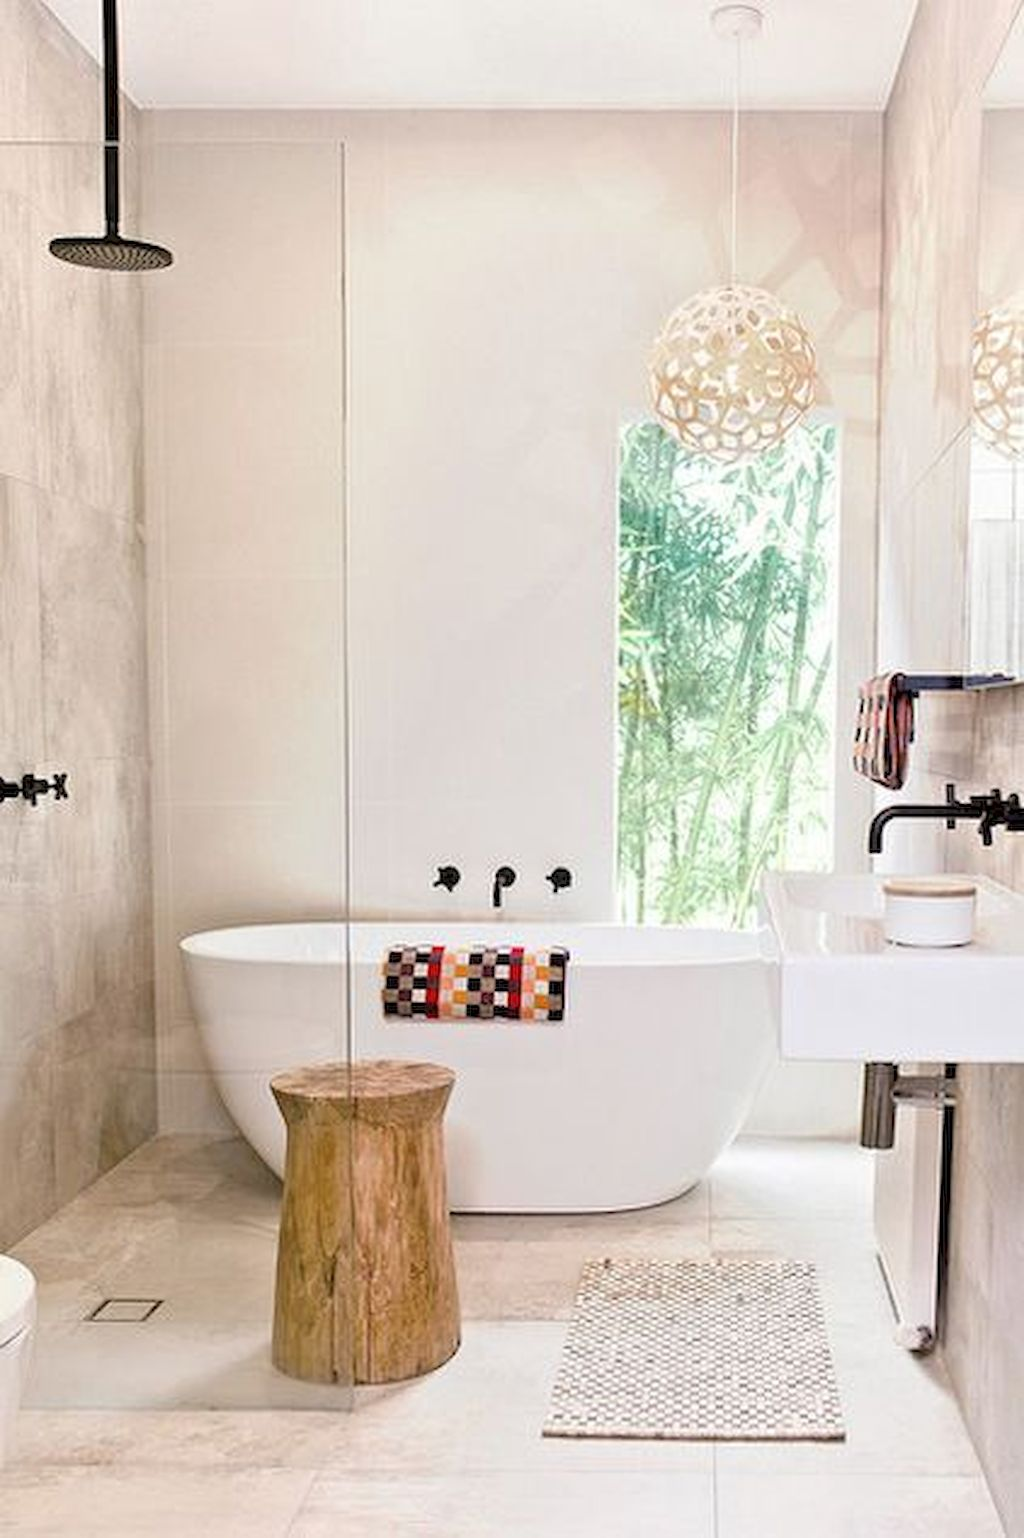 70+ Tiles Ideas for Small Bathroom - Get more Ideas in our gallery | #smallbathroom #bathroomdecoration #bathroomideas #bathroomtiles #bathroomdecor #homedecor (8)